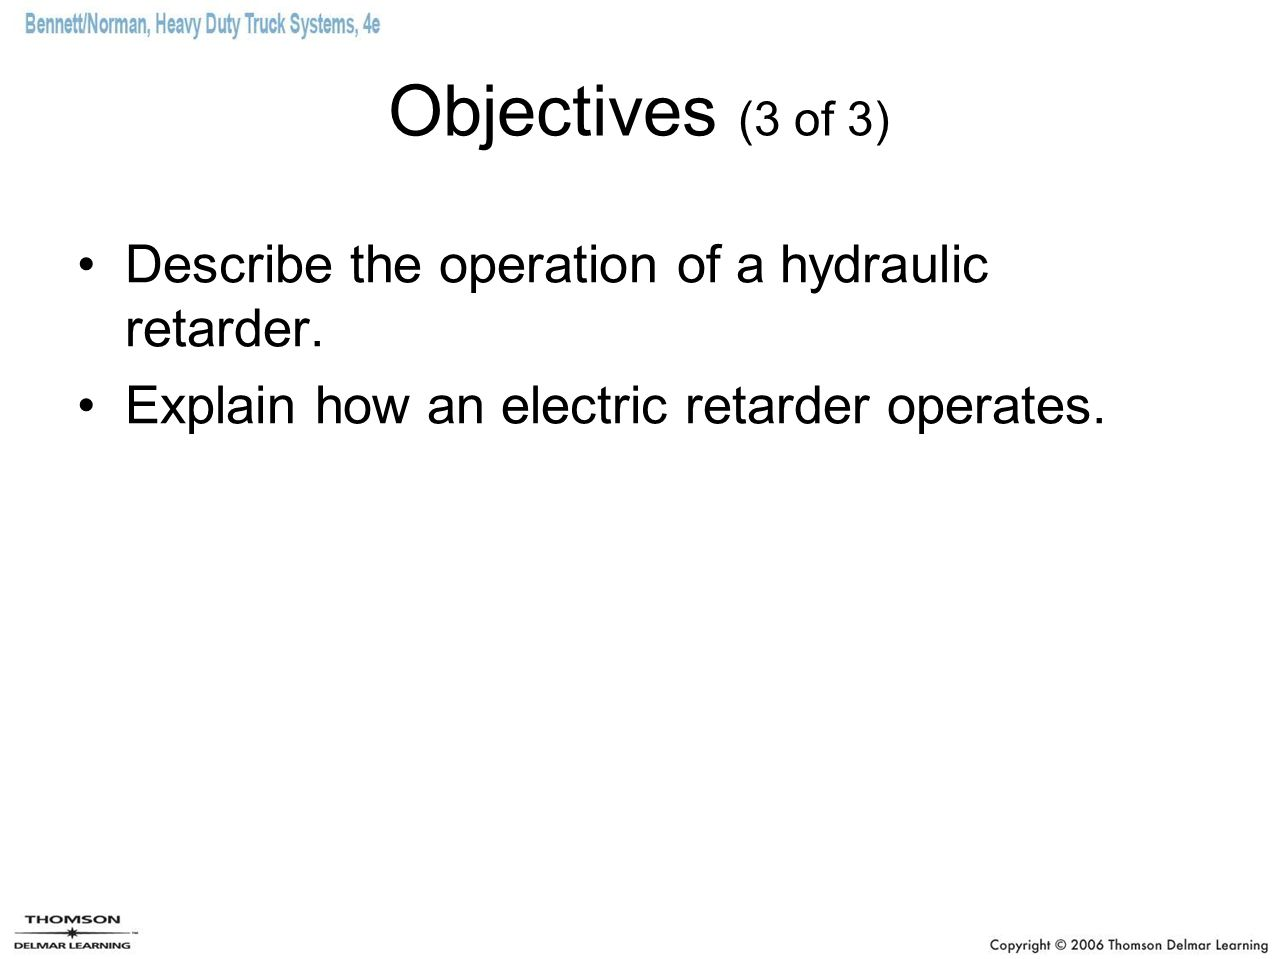 Objectives (3 of 3) Describe the operation of a hydraulic retarder. Explain how an electric retarder operates.